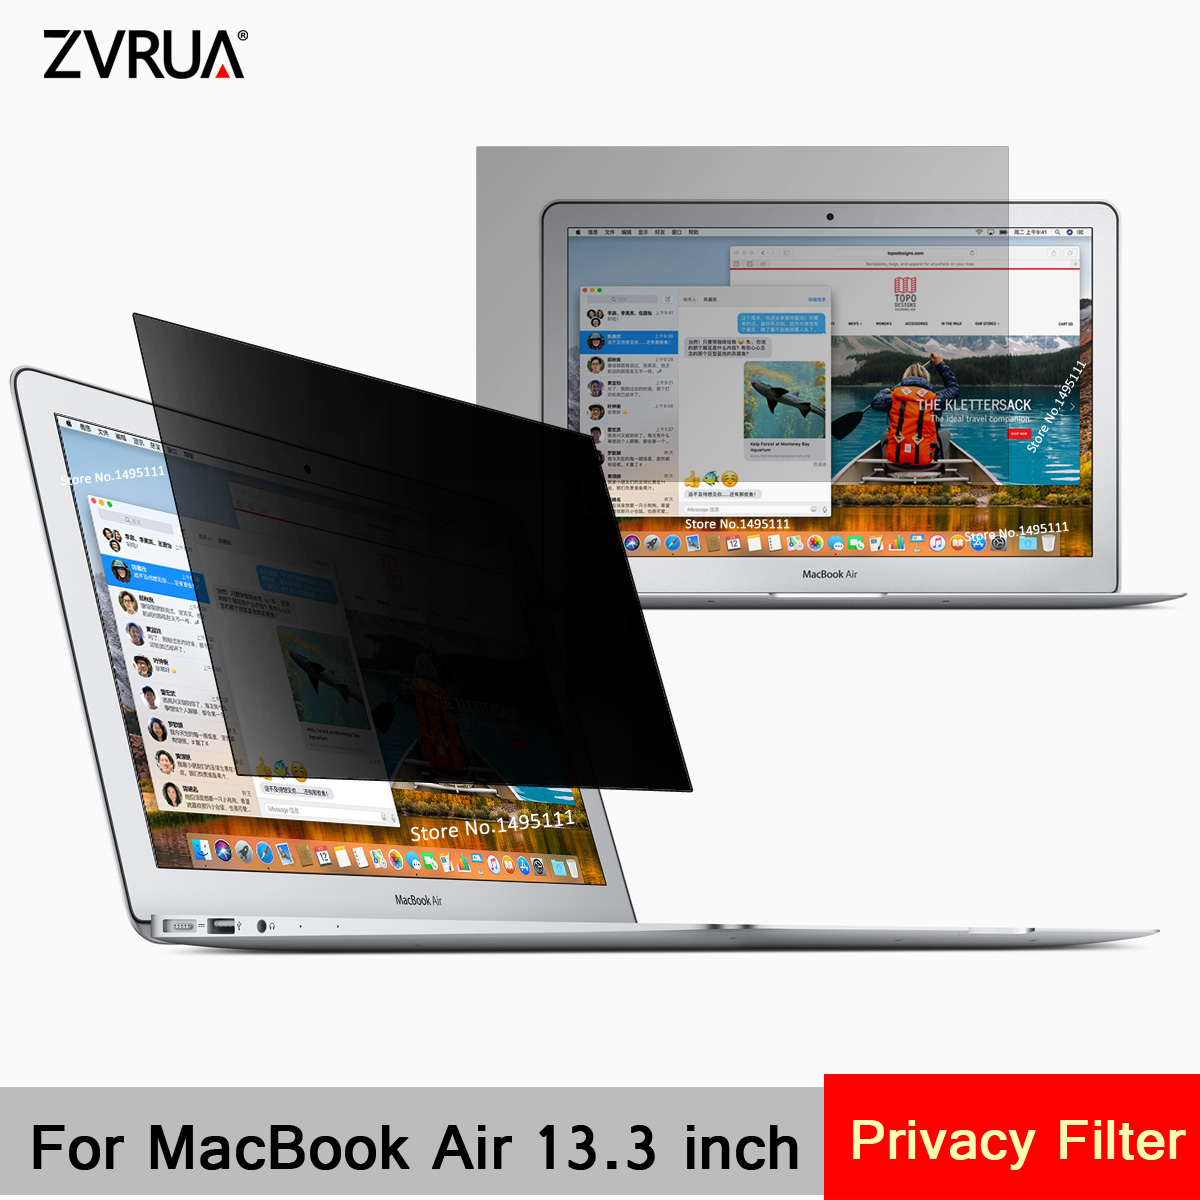 For Apple MacBook Air 13.3 inch (286mm*179mm) Privacy Filter Laptop Notebook Anti-glare Screen protector Protective film image